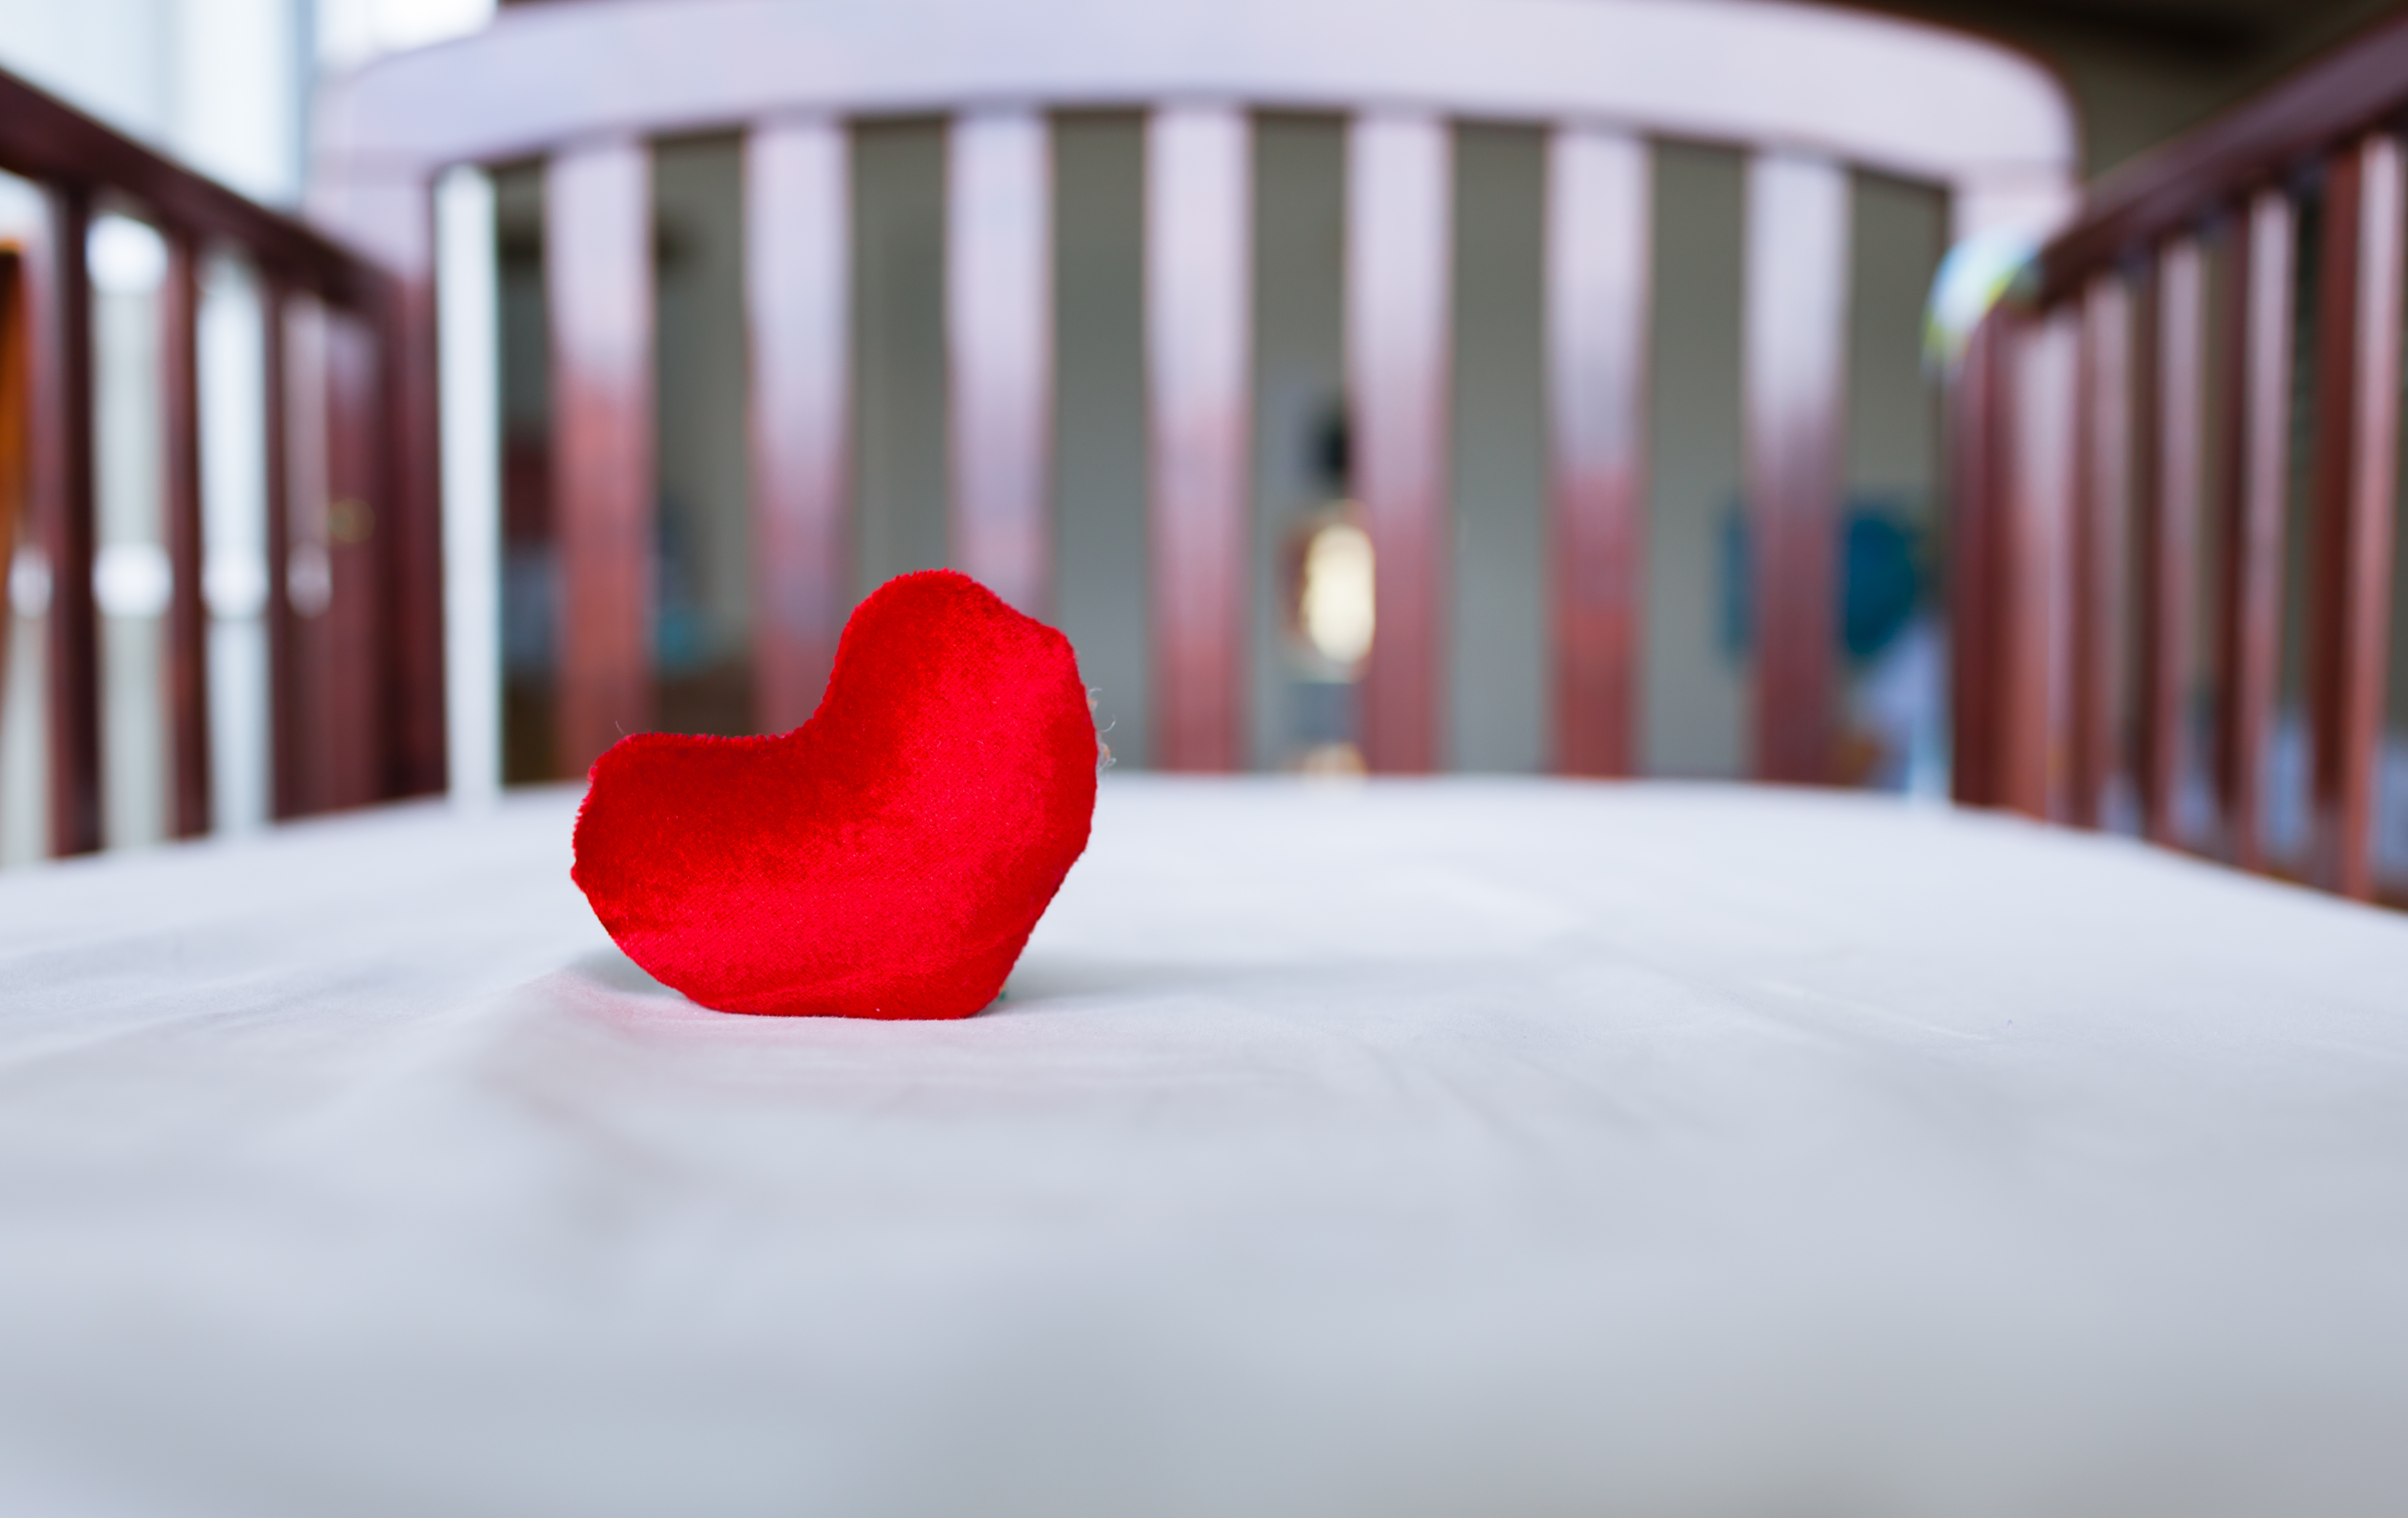 Heart in baby's crib. (child care concept)